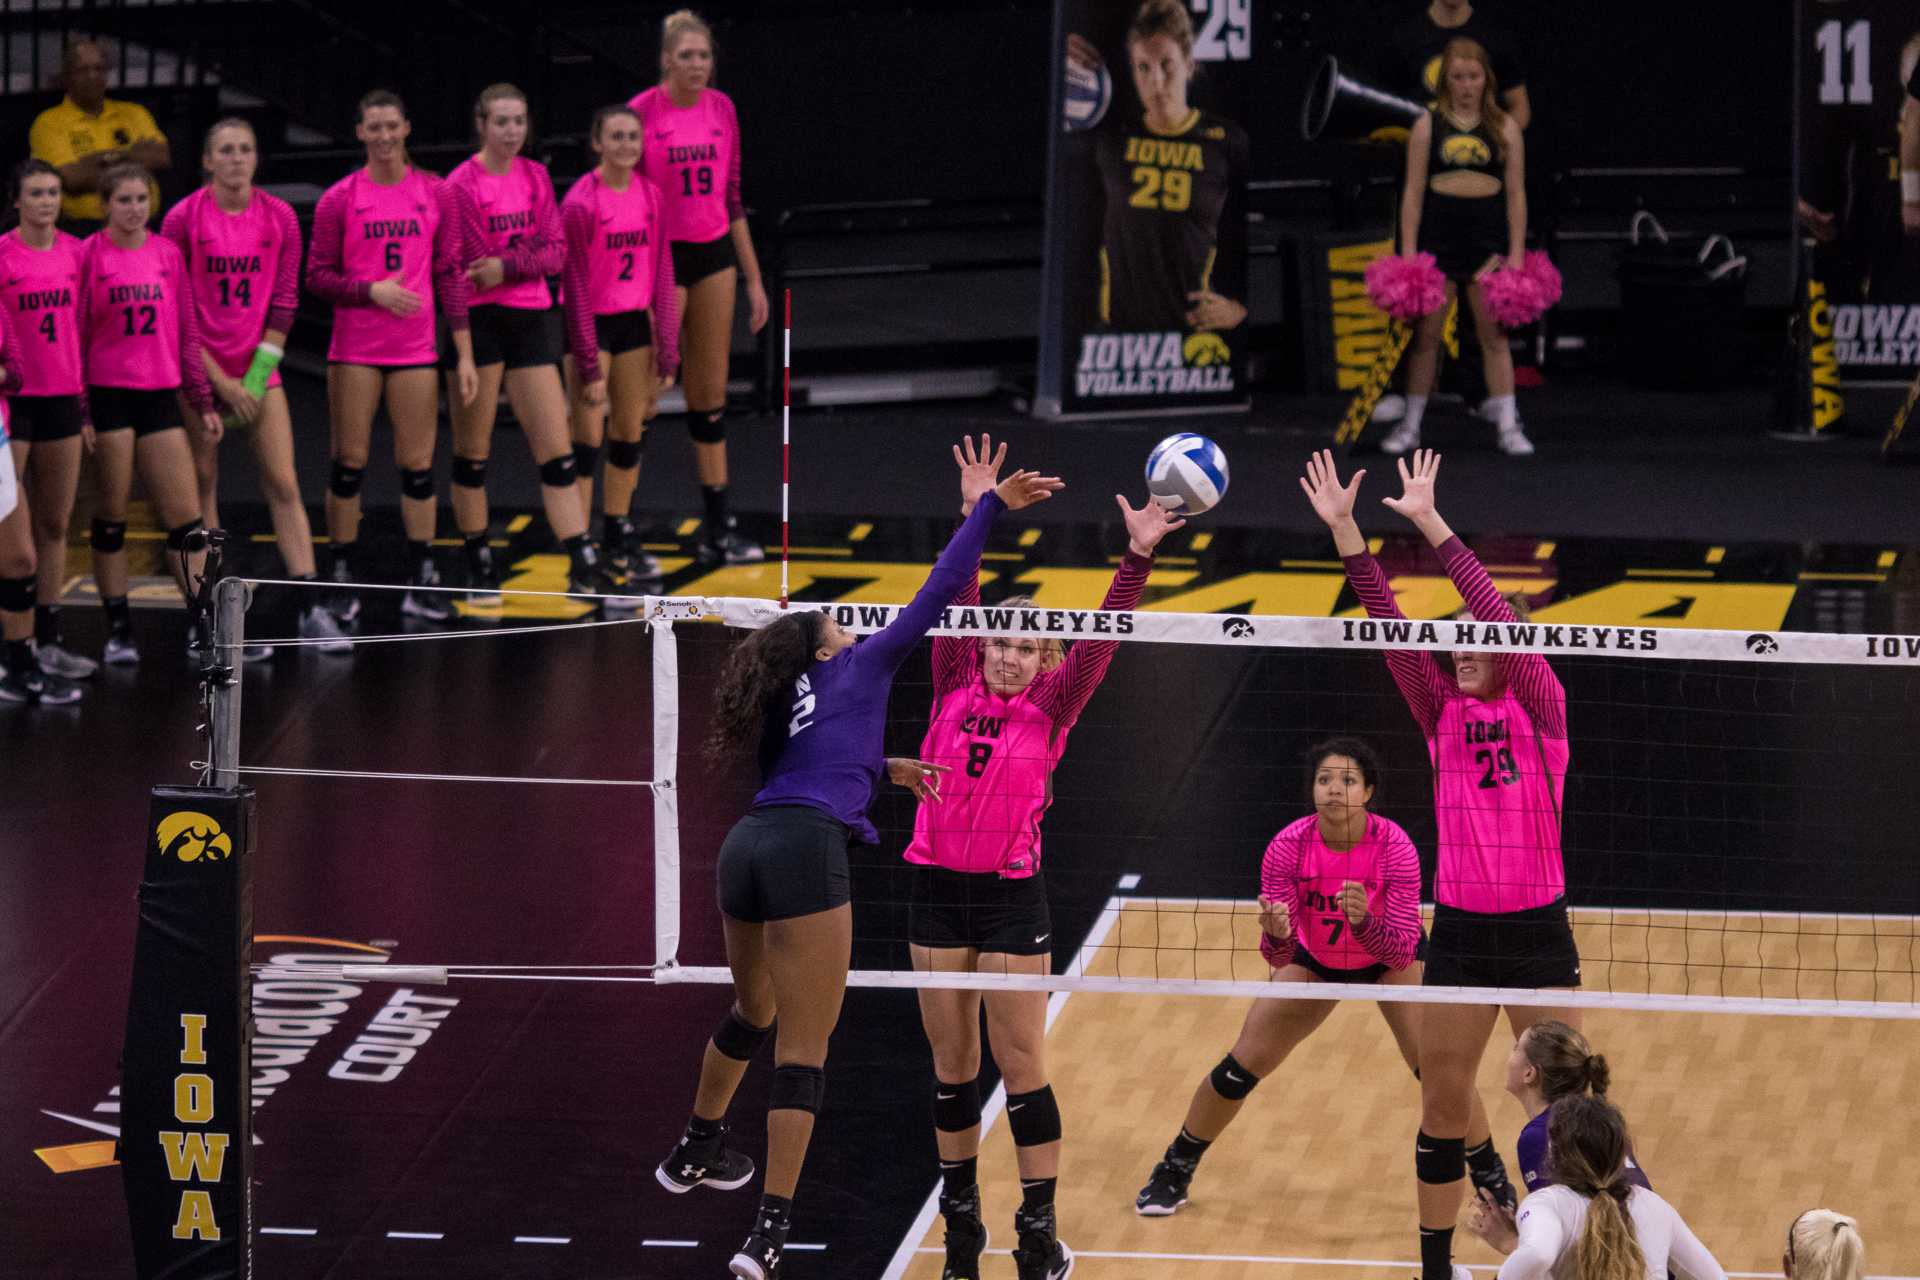 Players battle at the net during the volleyball match between the University of Iowa Hawkeyes and the Northwestern University Wildcats on Saturday, Oct. 21, 2017. The Hawkeyes defeated the Wildcats three sets to zero. (David Harmantas/The Daily Iowan)